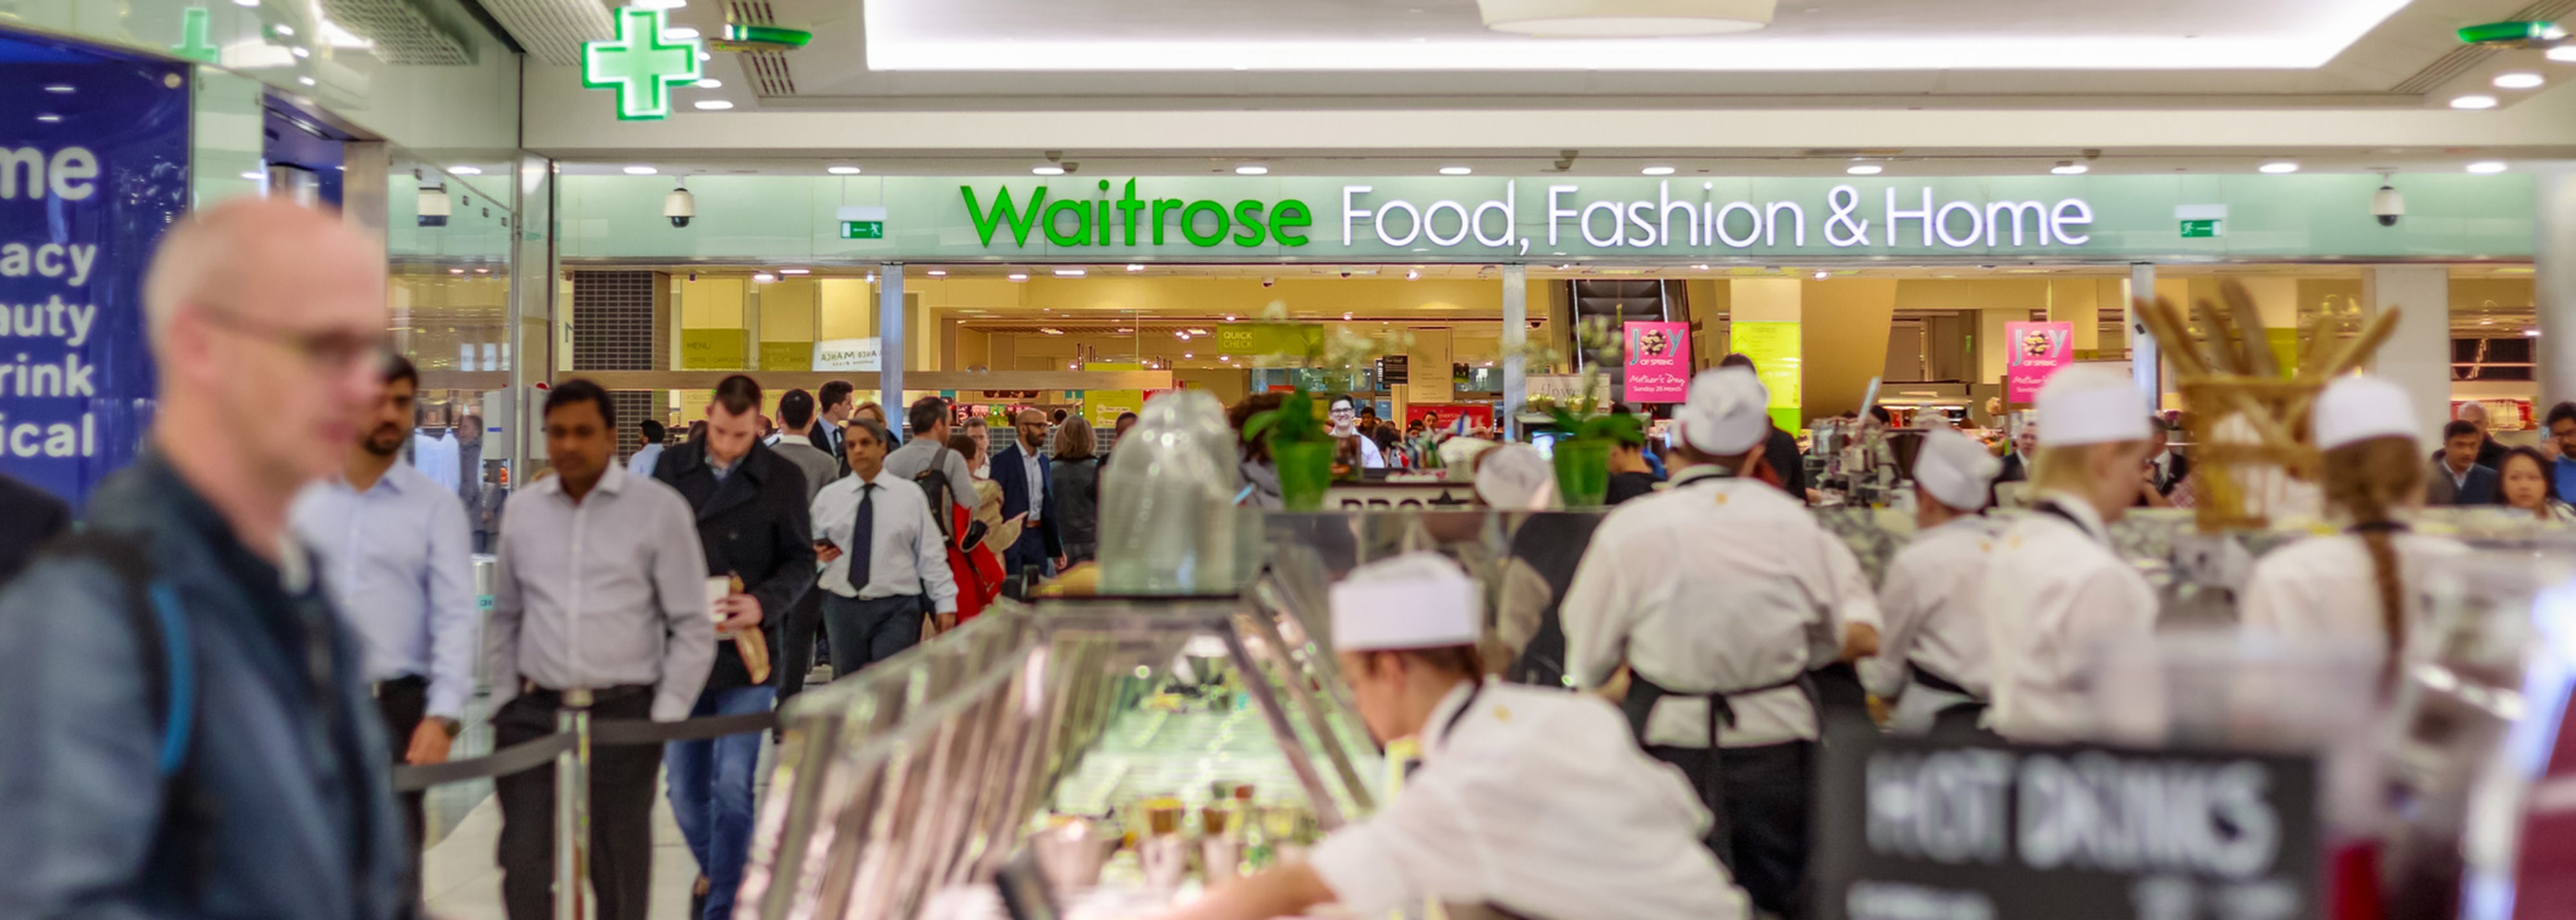 Waitrose store. Photo: Wei Huang/Dreamstime.com